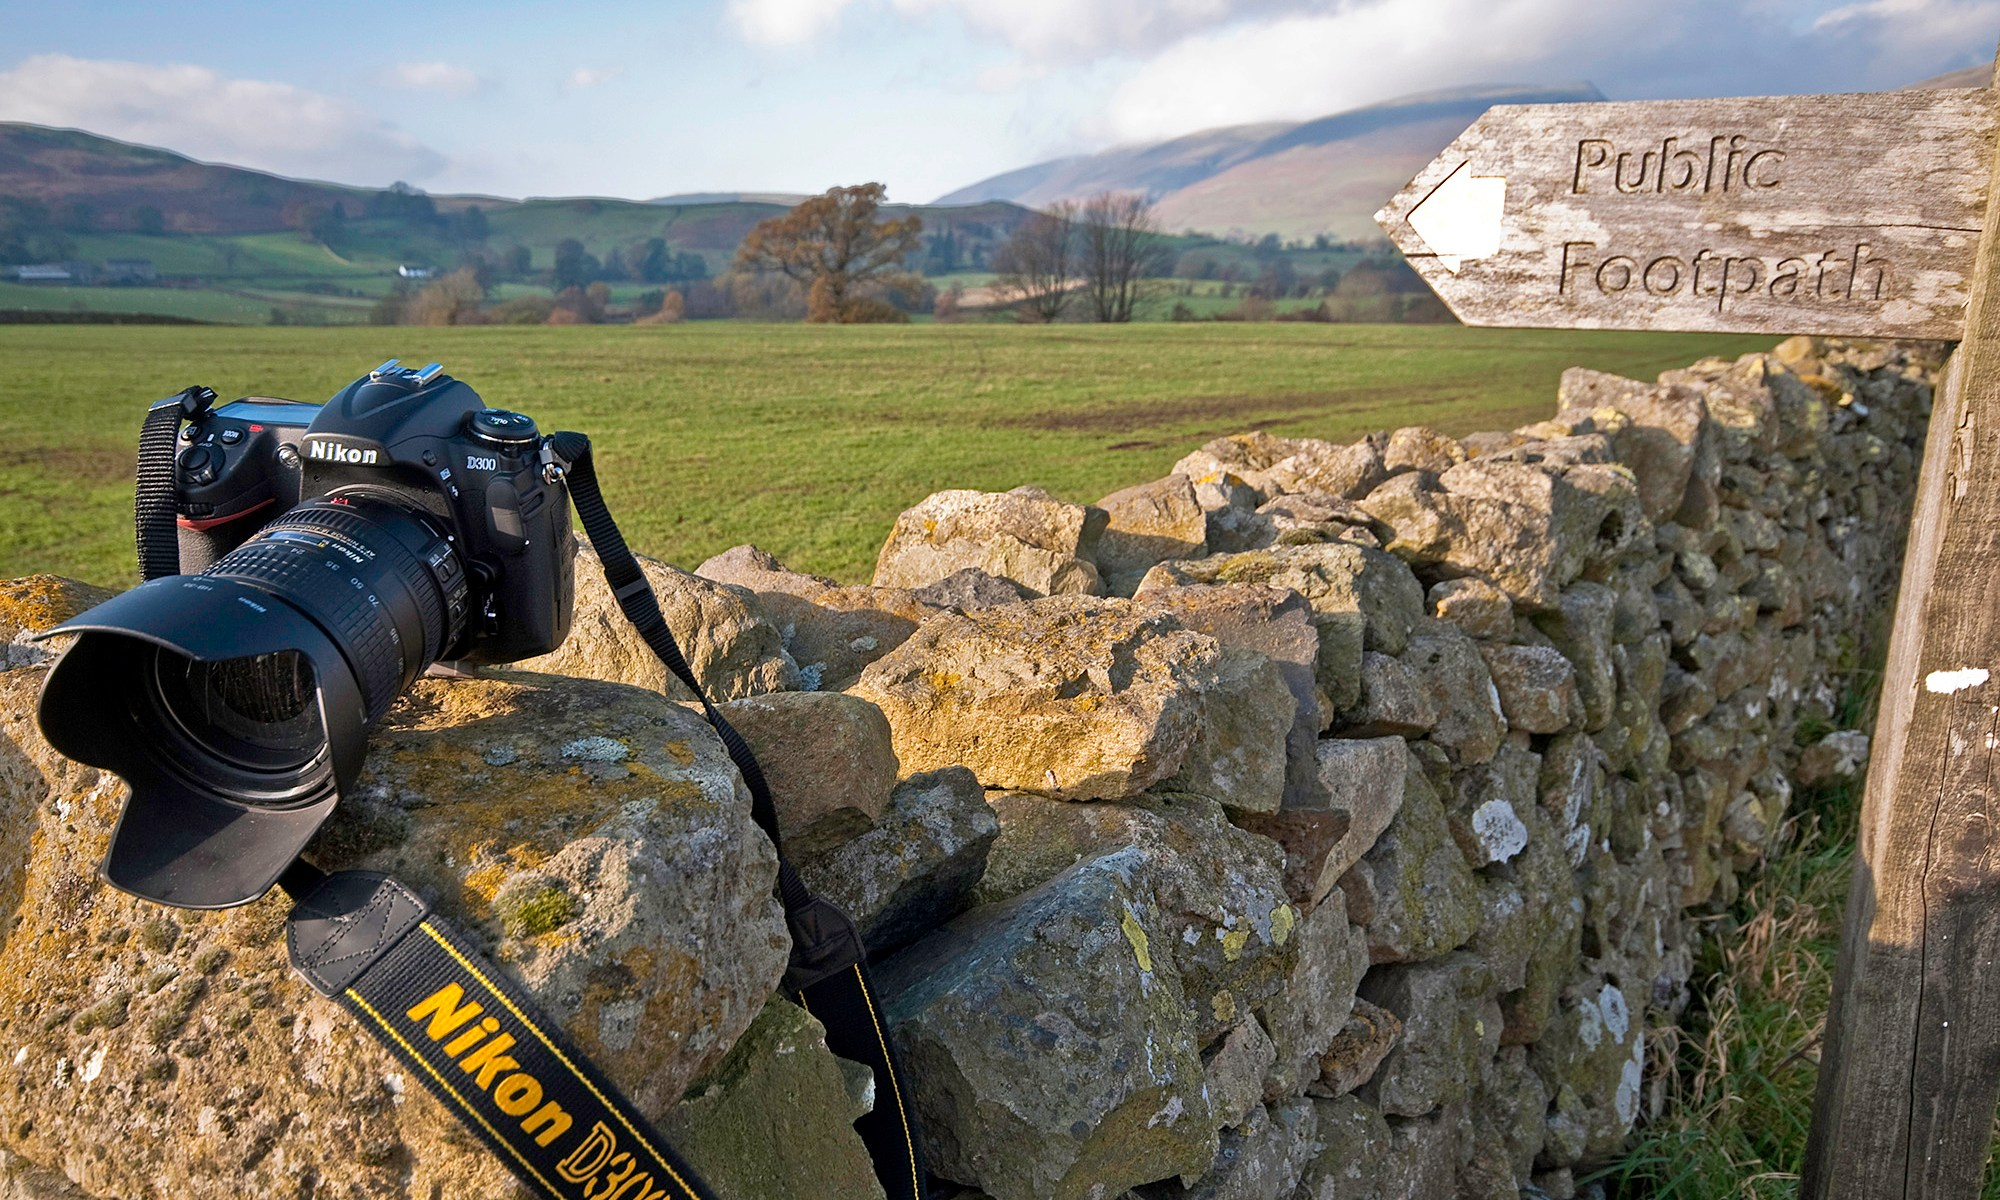 Nikon D300 on Dry Stone Wall